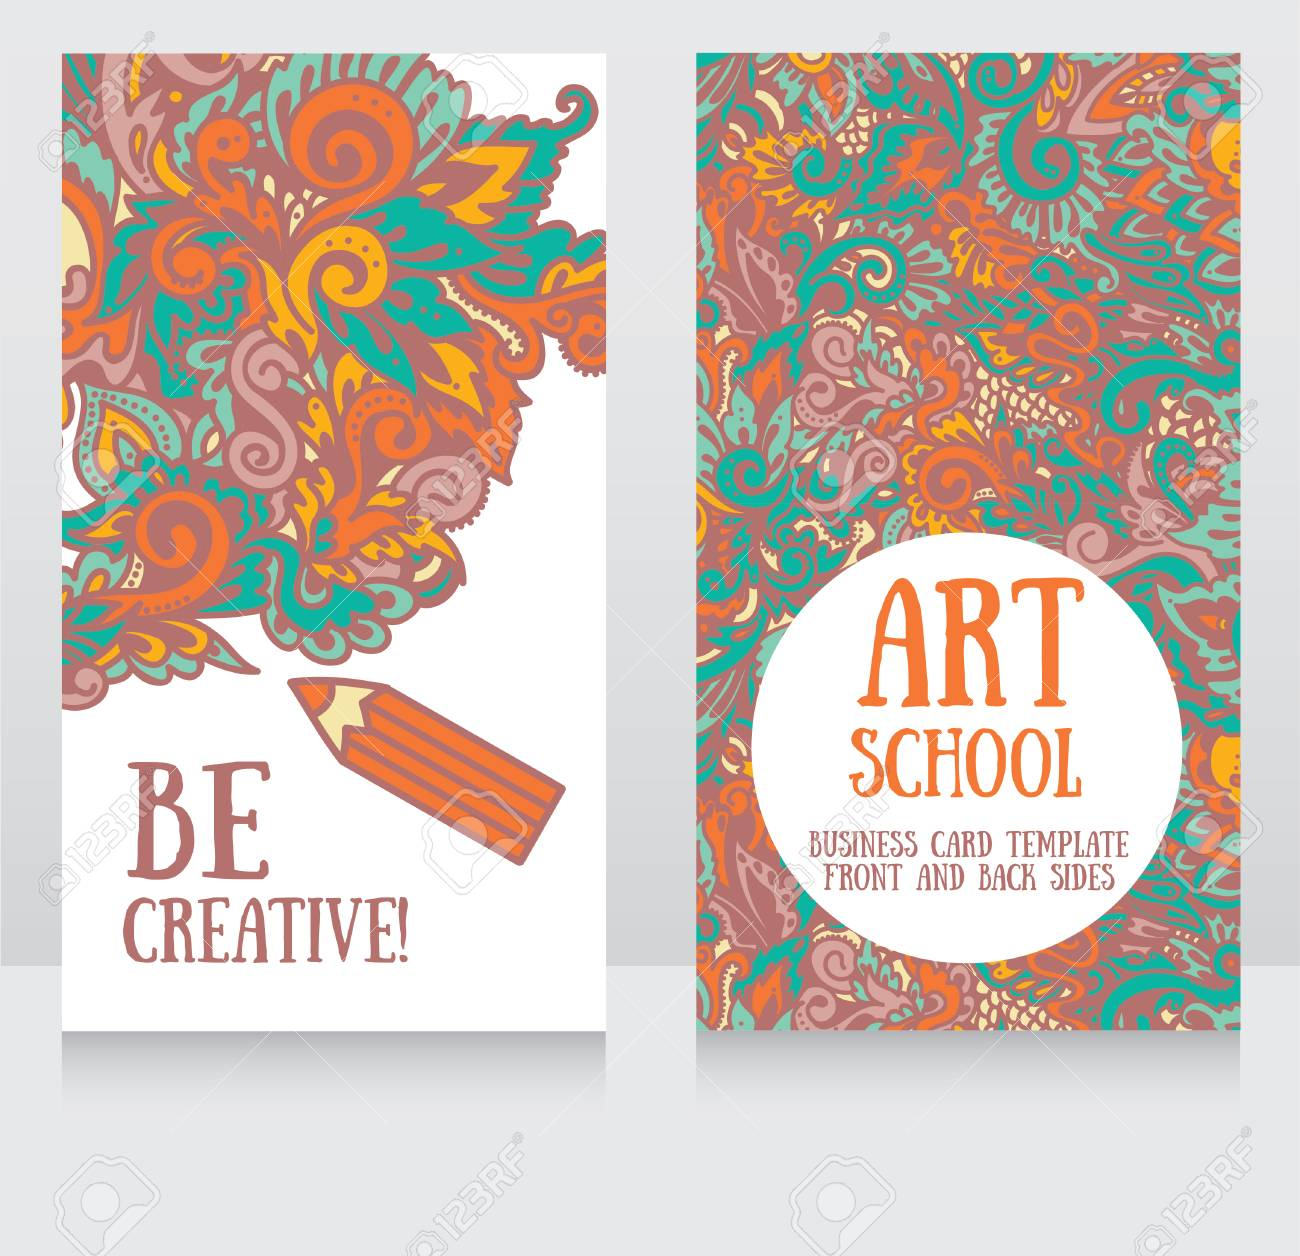 Business Cards Template For Art School, Can Be Used For Art Therapy ...